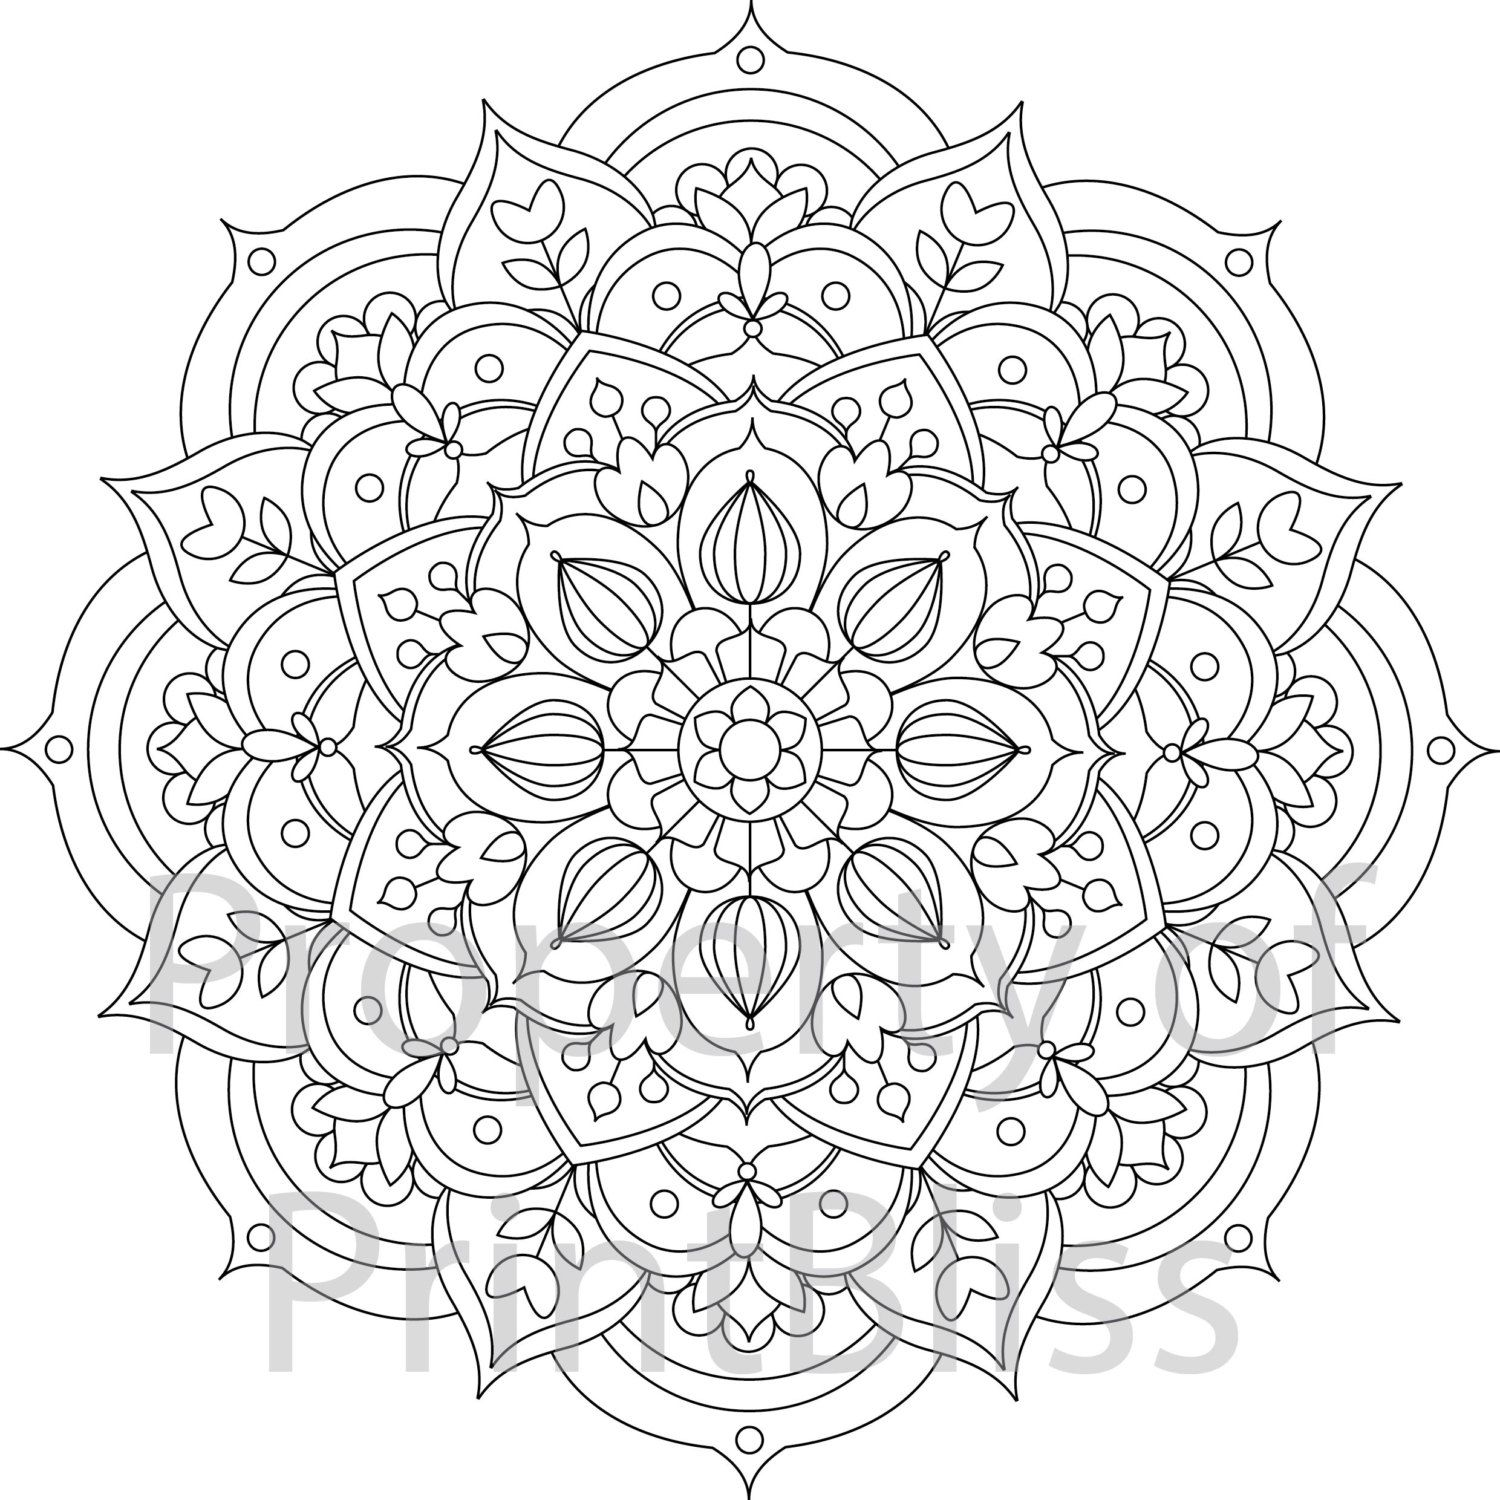 30 Flower Mandala Printable Coloring Page By PrintBliss On Etsy